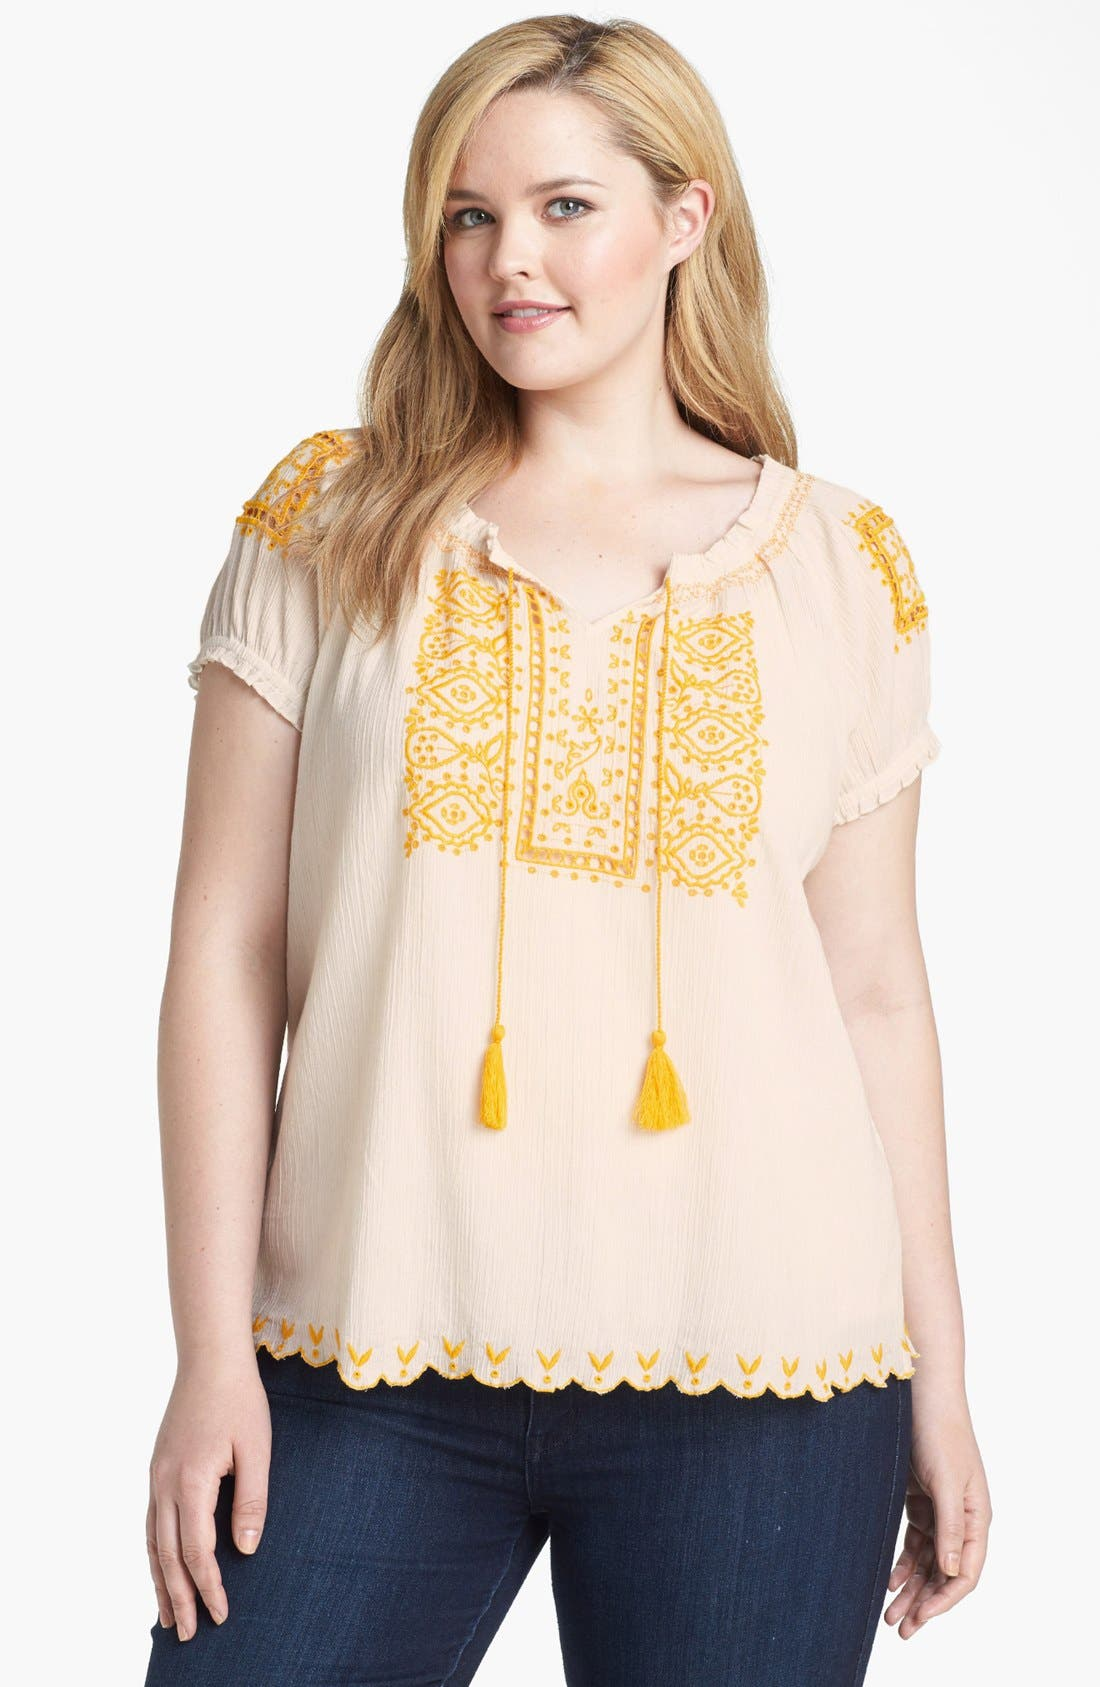 Alternate Image 1 Selected - Lucky Brand 'Sofi' Embroidered Eyelet Top (Plus Size)